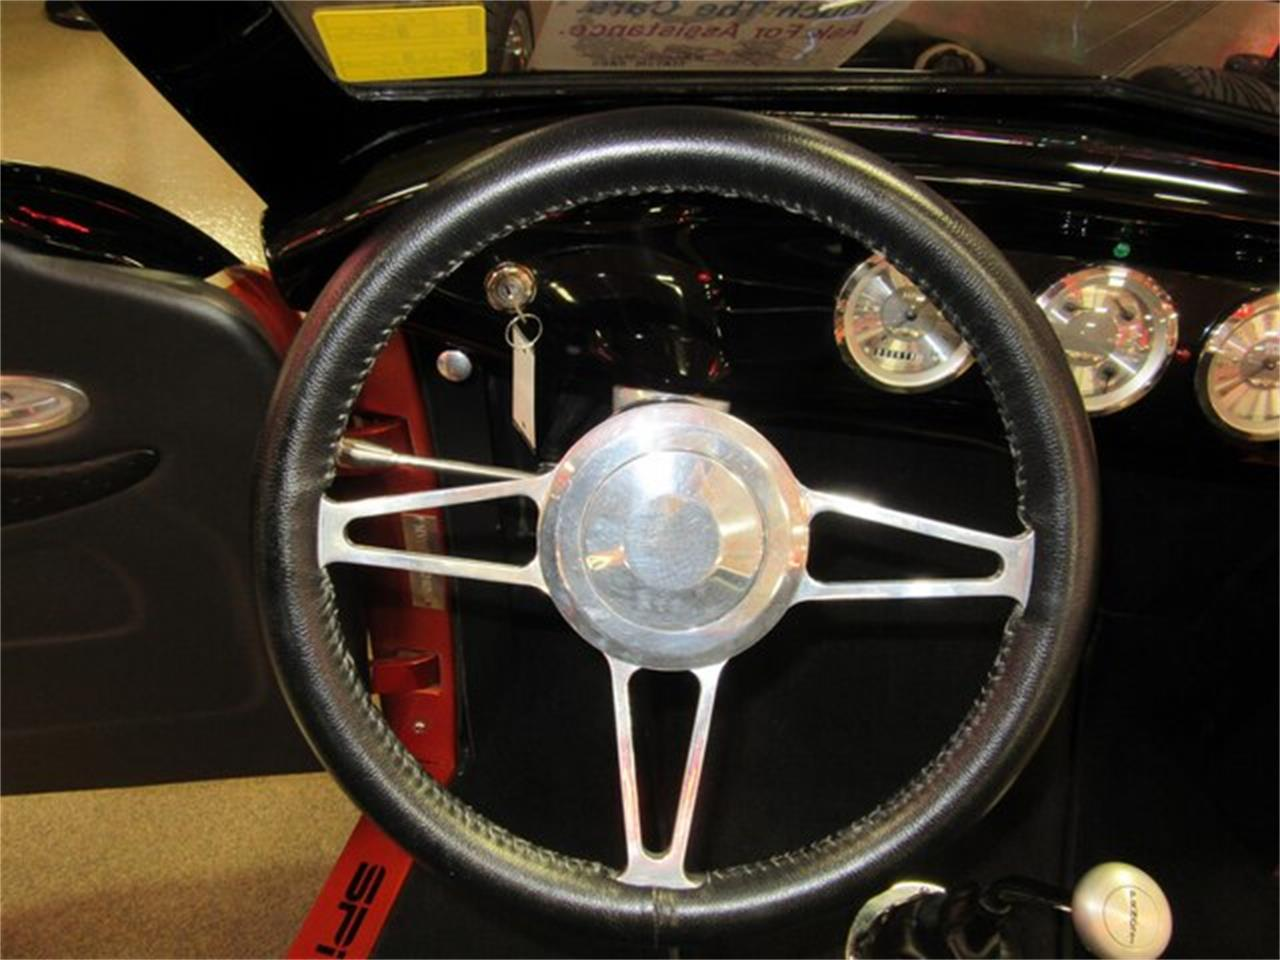 2006 Custom Roadster for sale in Greenwood, IN – photo 32